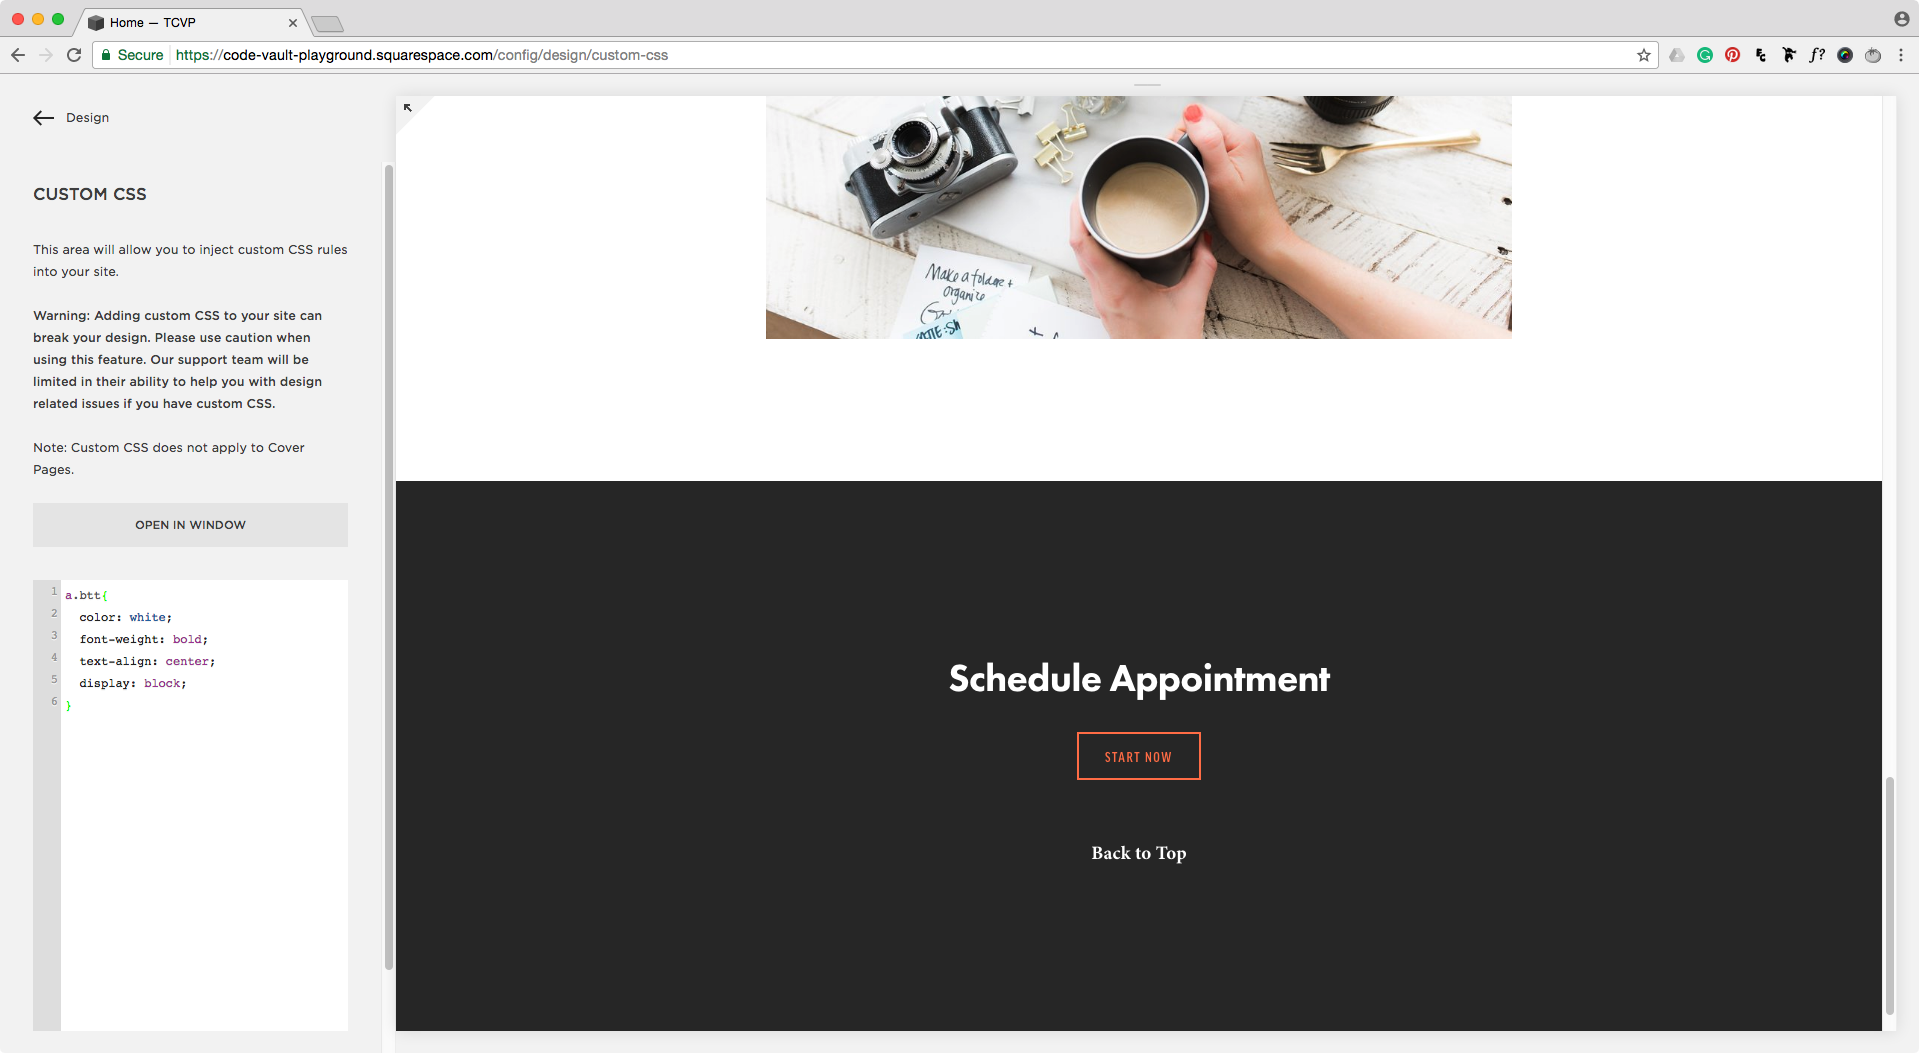 Styling back to top link with CSS